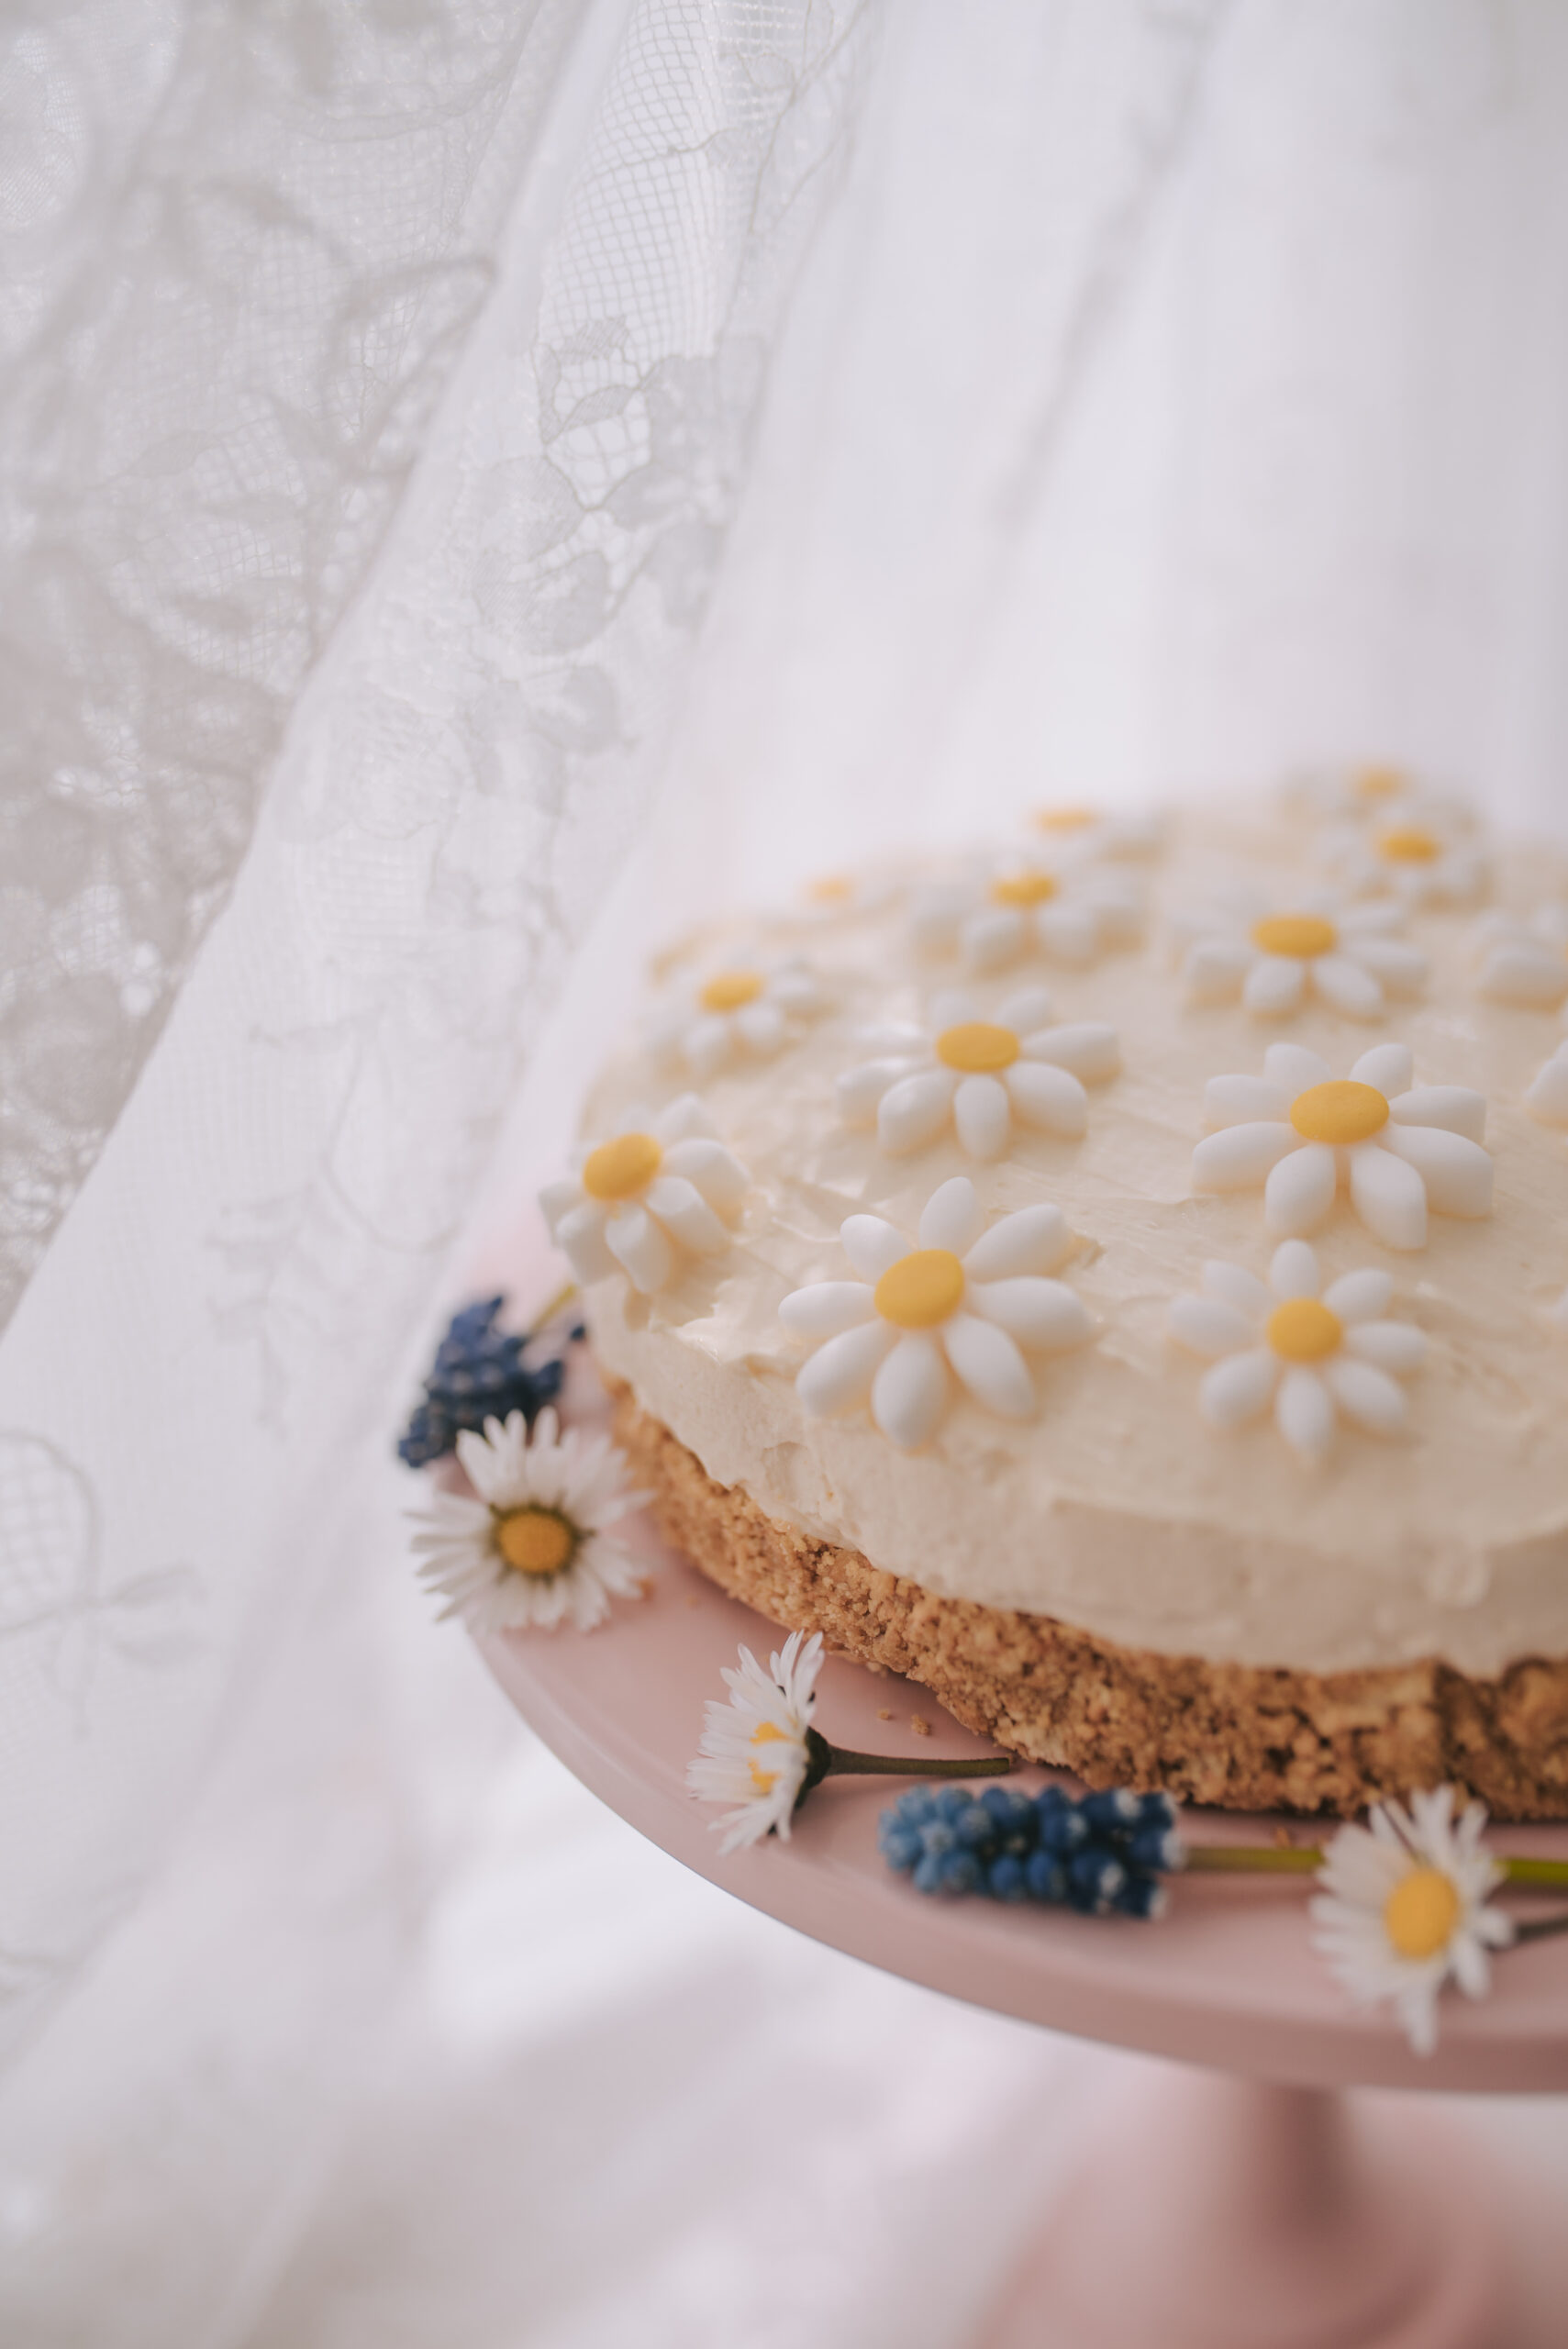 Fondant daisy cheesecake recipe, daisies on a pastel pink cake stand.